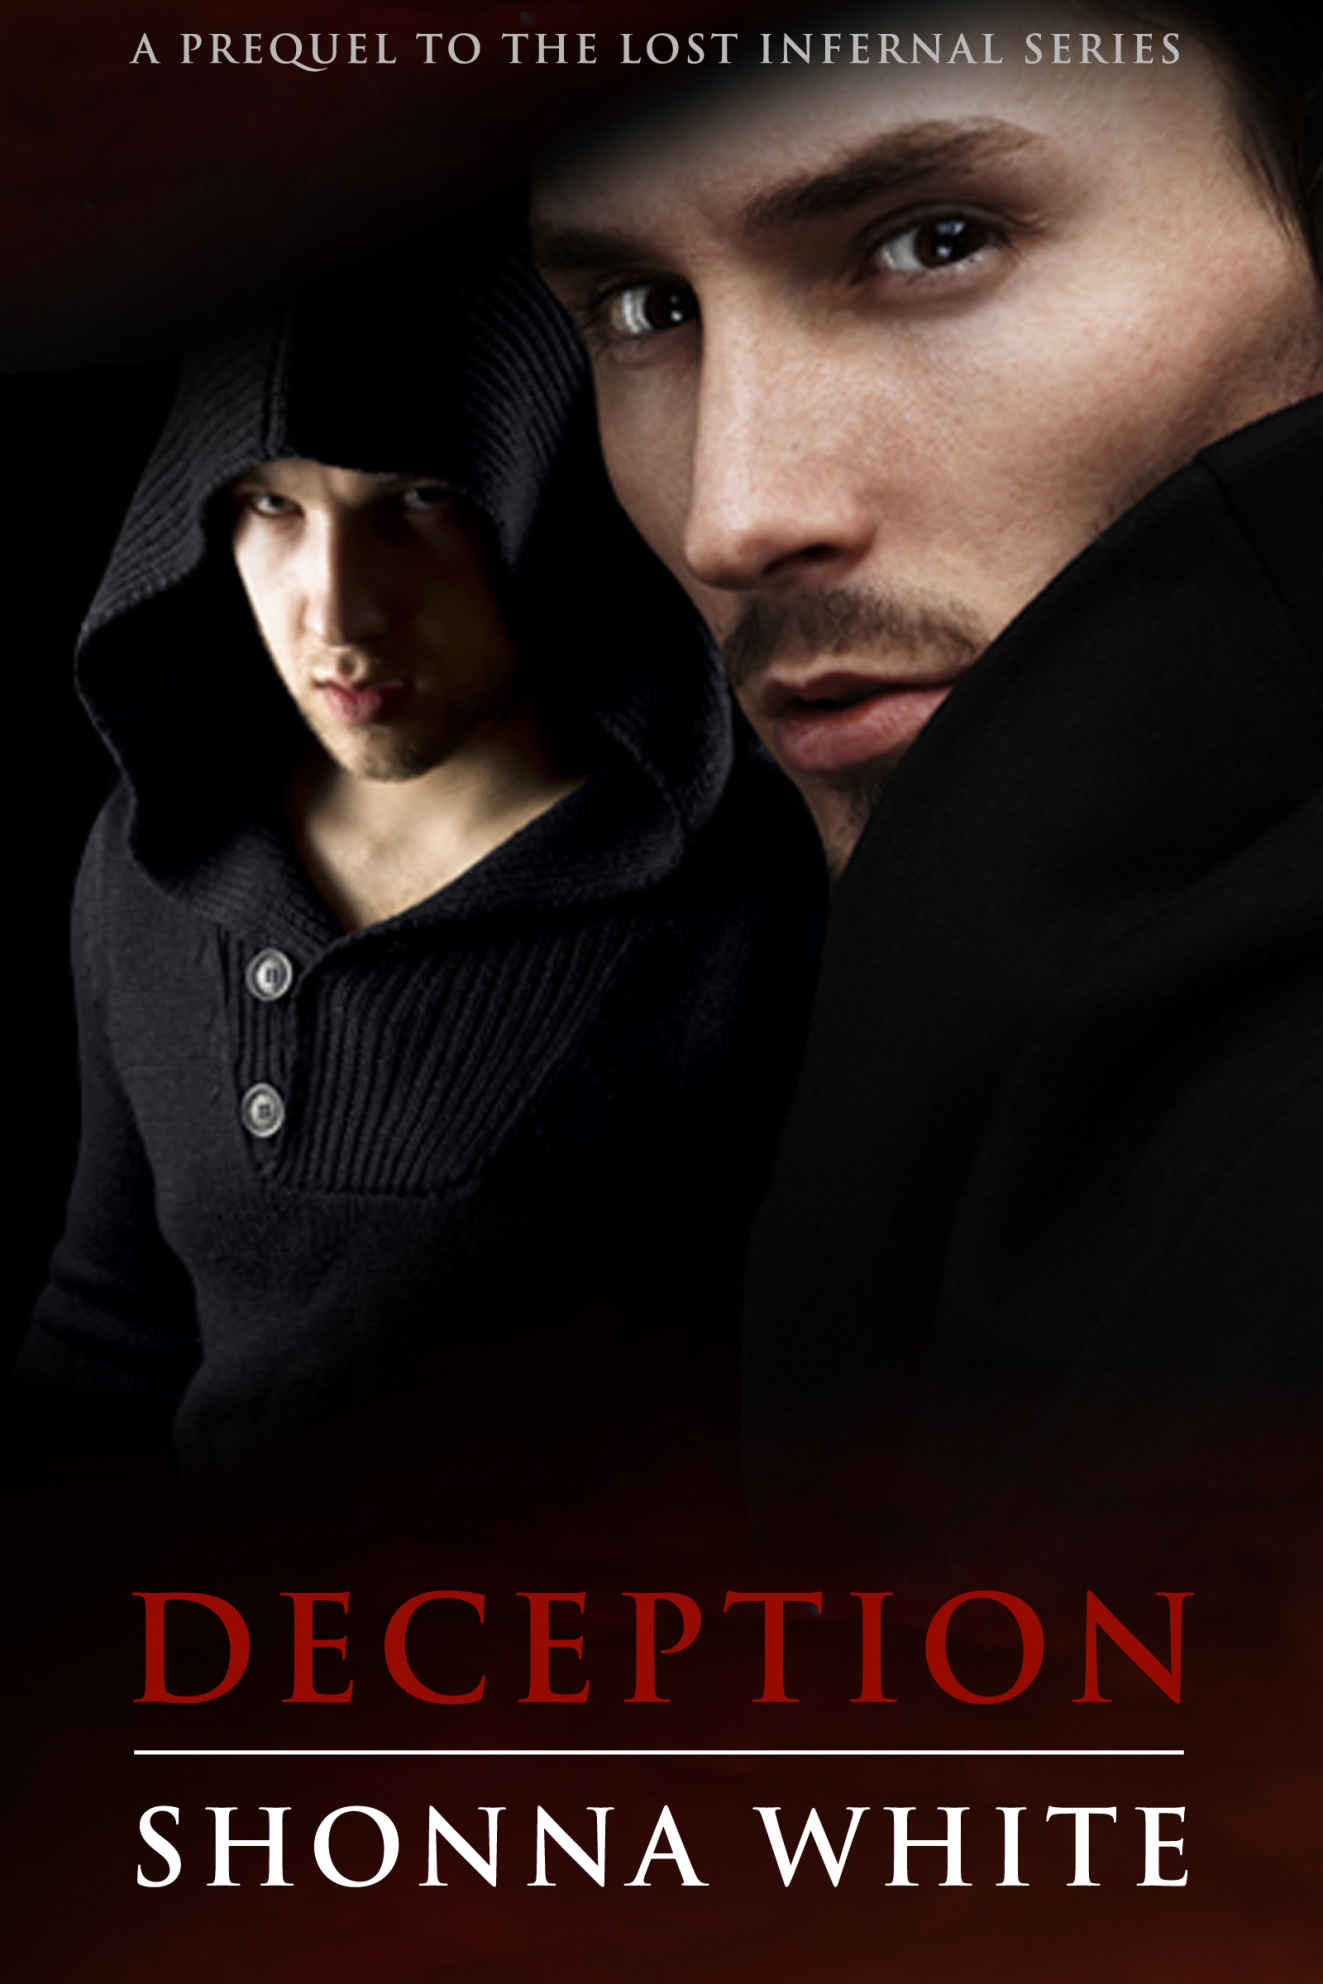 Cover Page for Vampire / Hunter novel series Lost Infernal Prequel - Deception